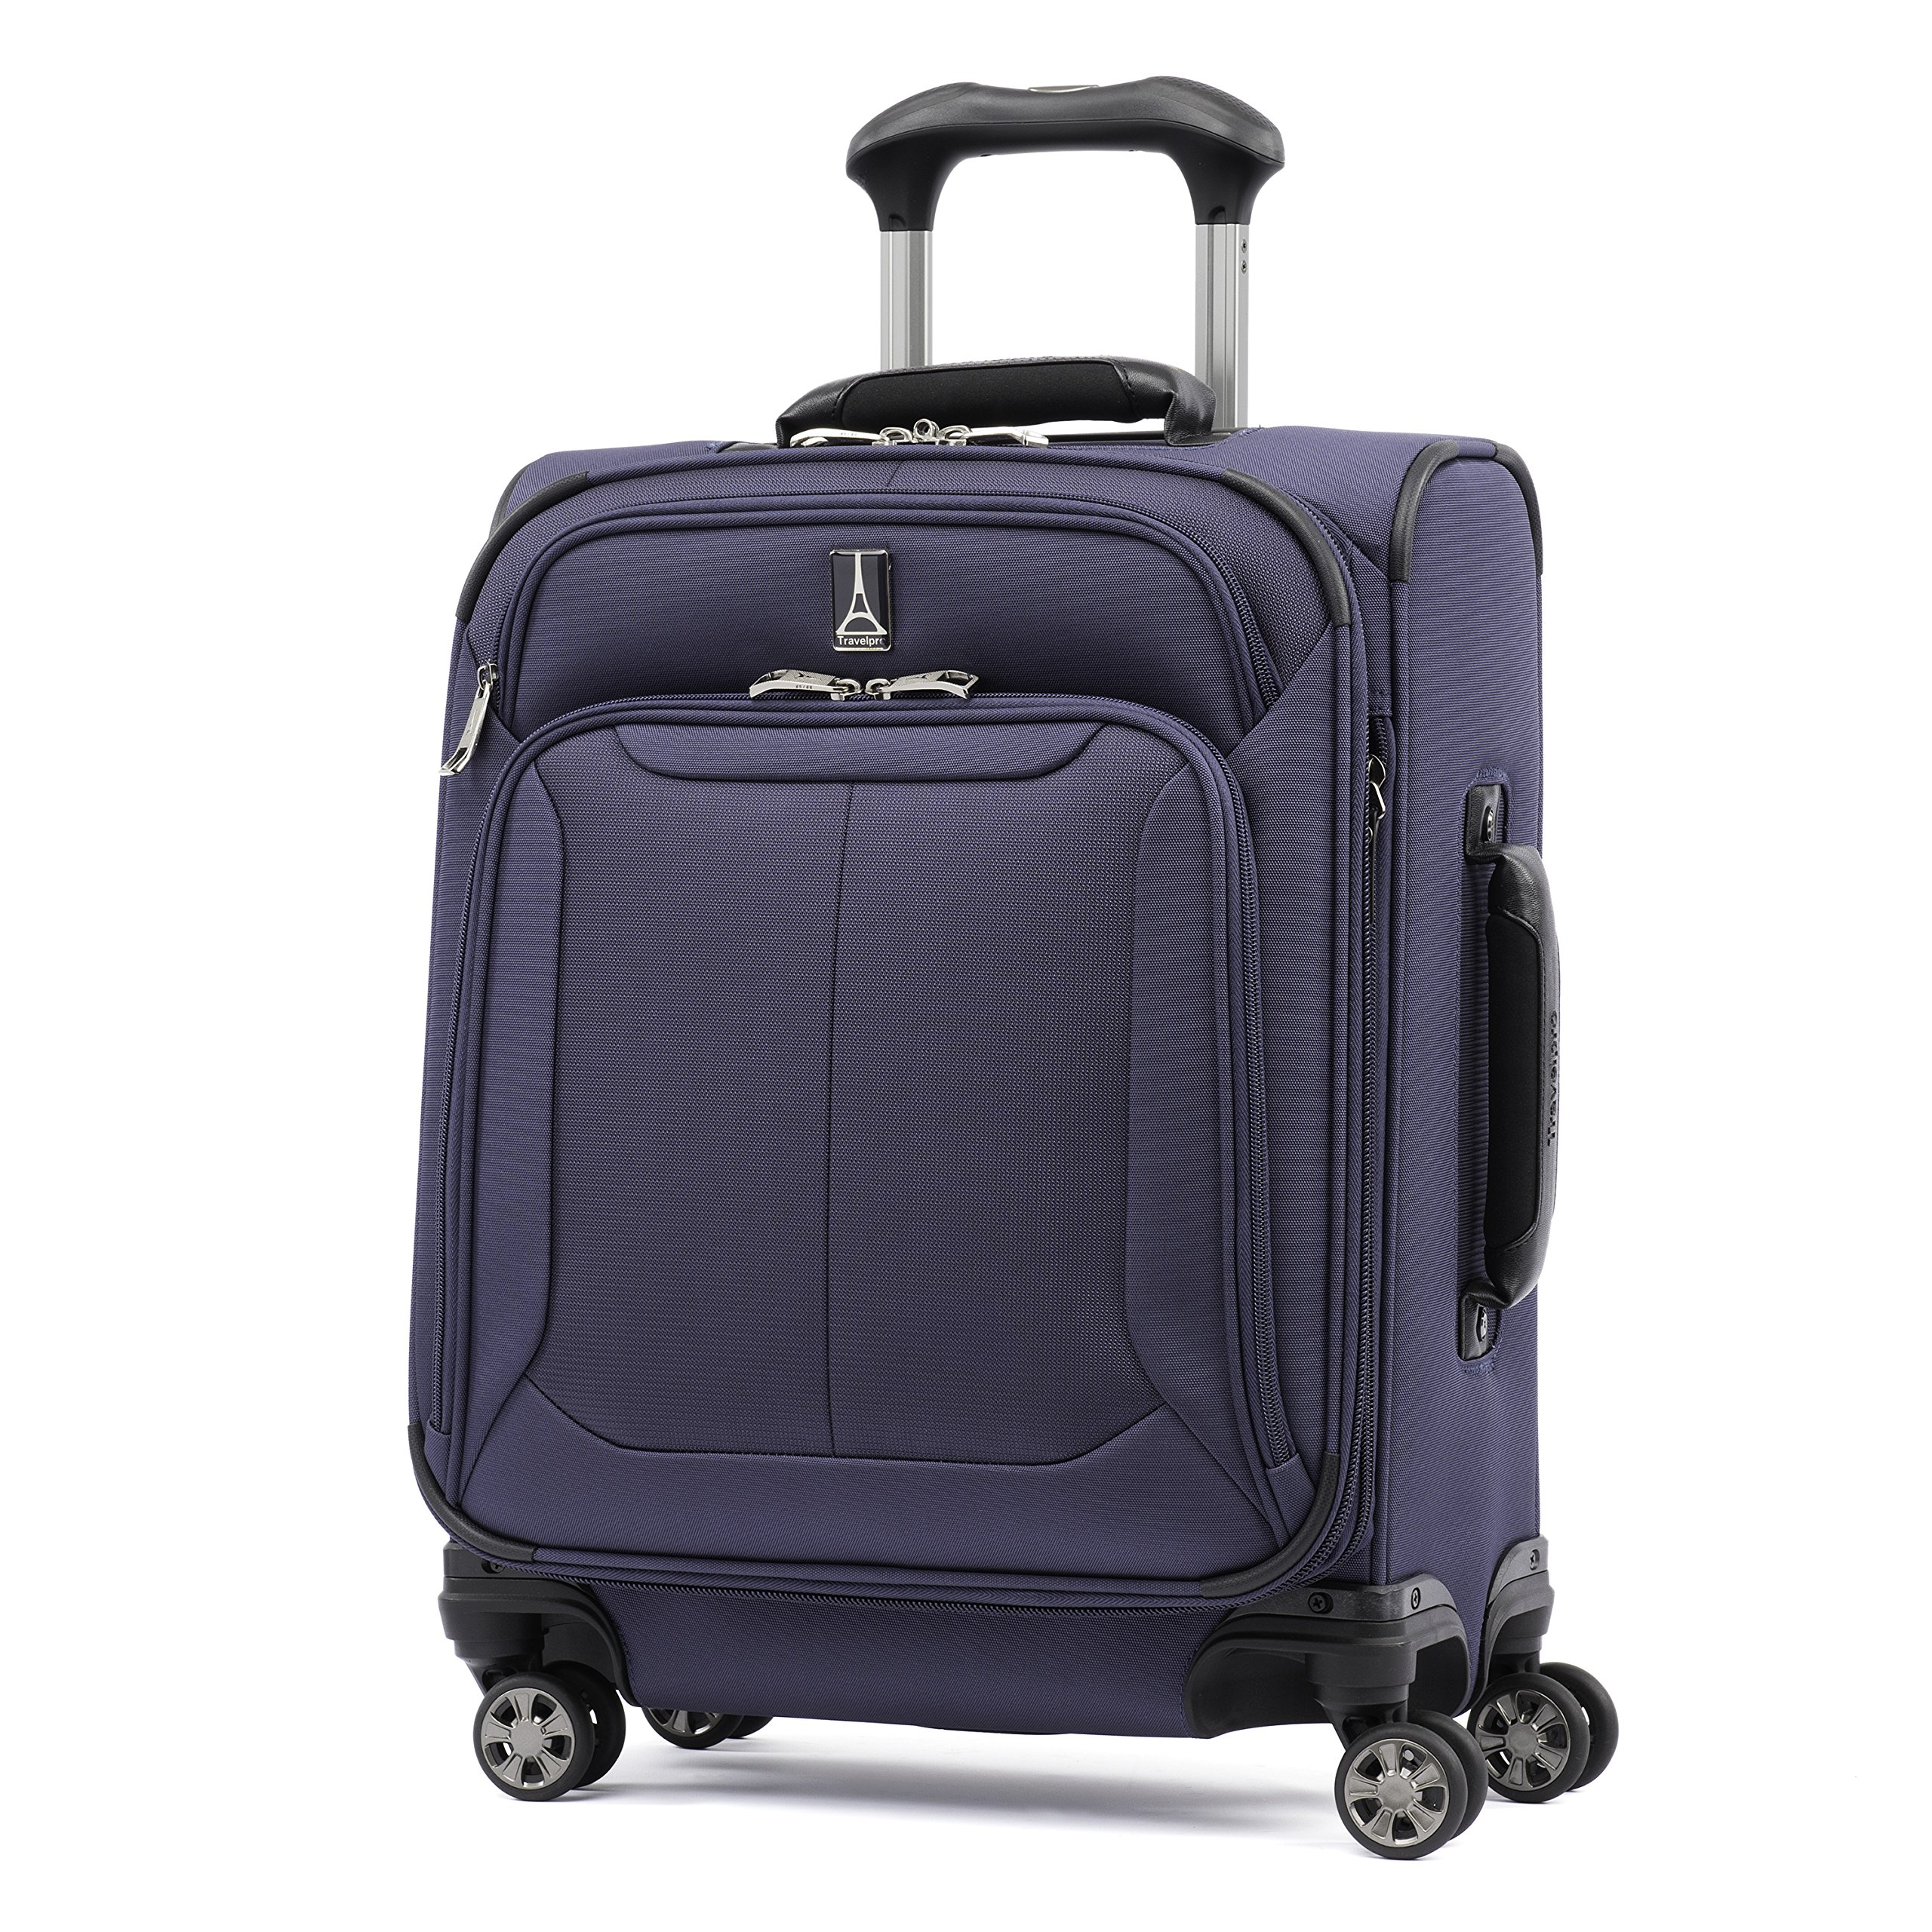 Travelpro Skypro Lite 20'' International Expandable 8-Wheel Carry-On Luggage Spinner (Navy)